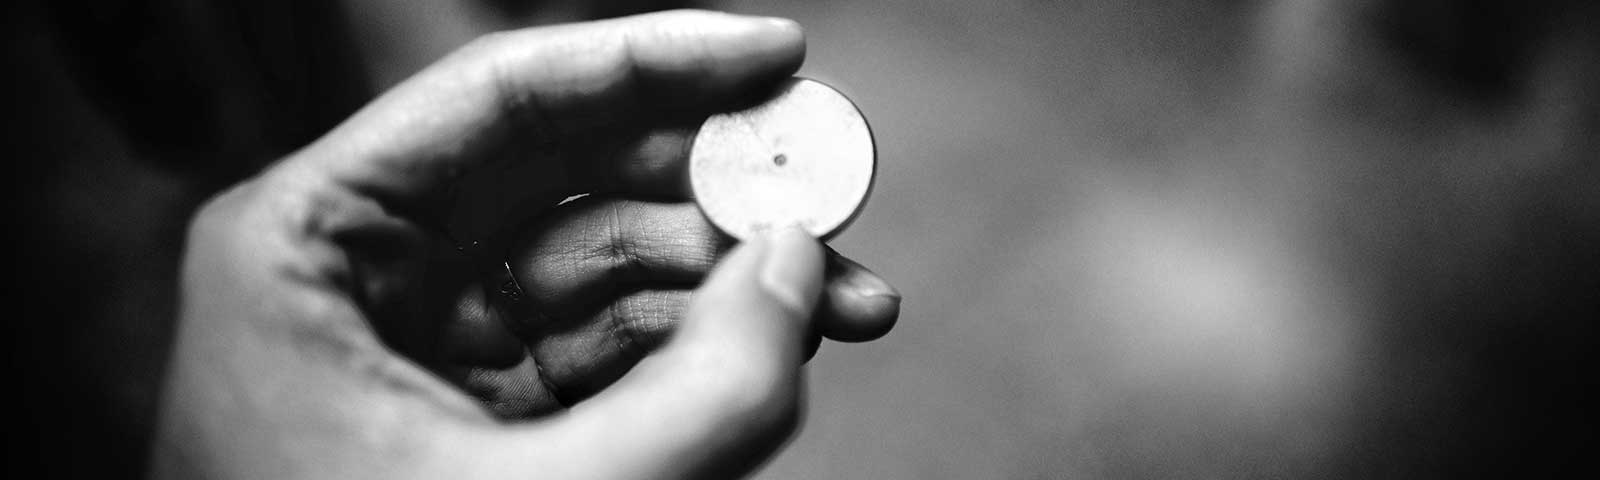 Black and white photograph of hand holding token